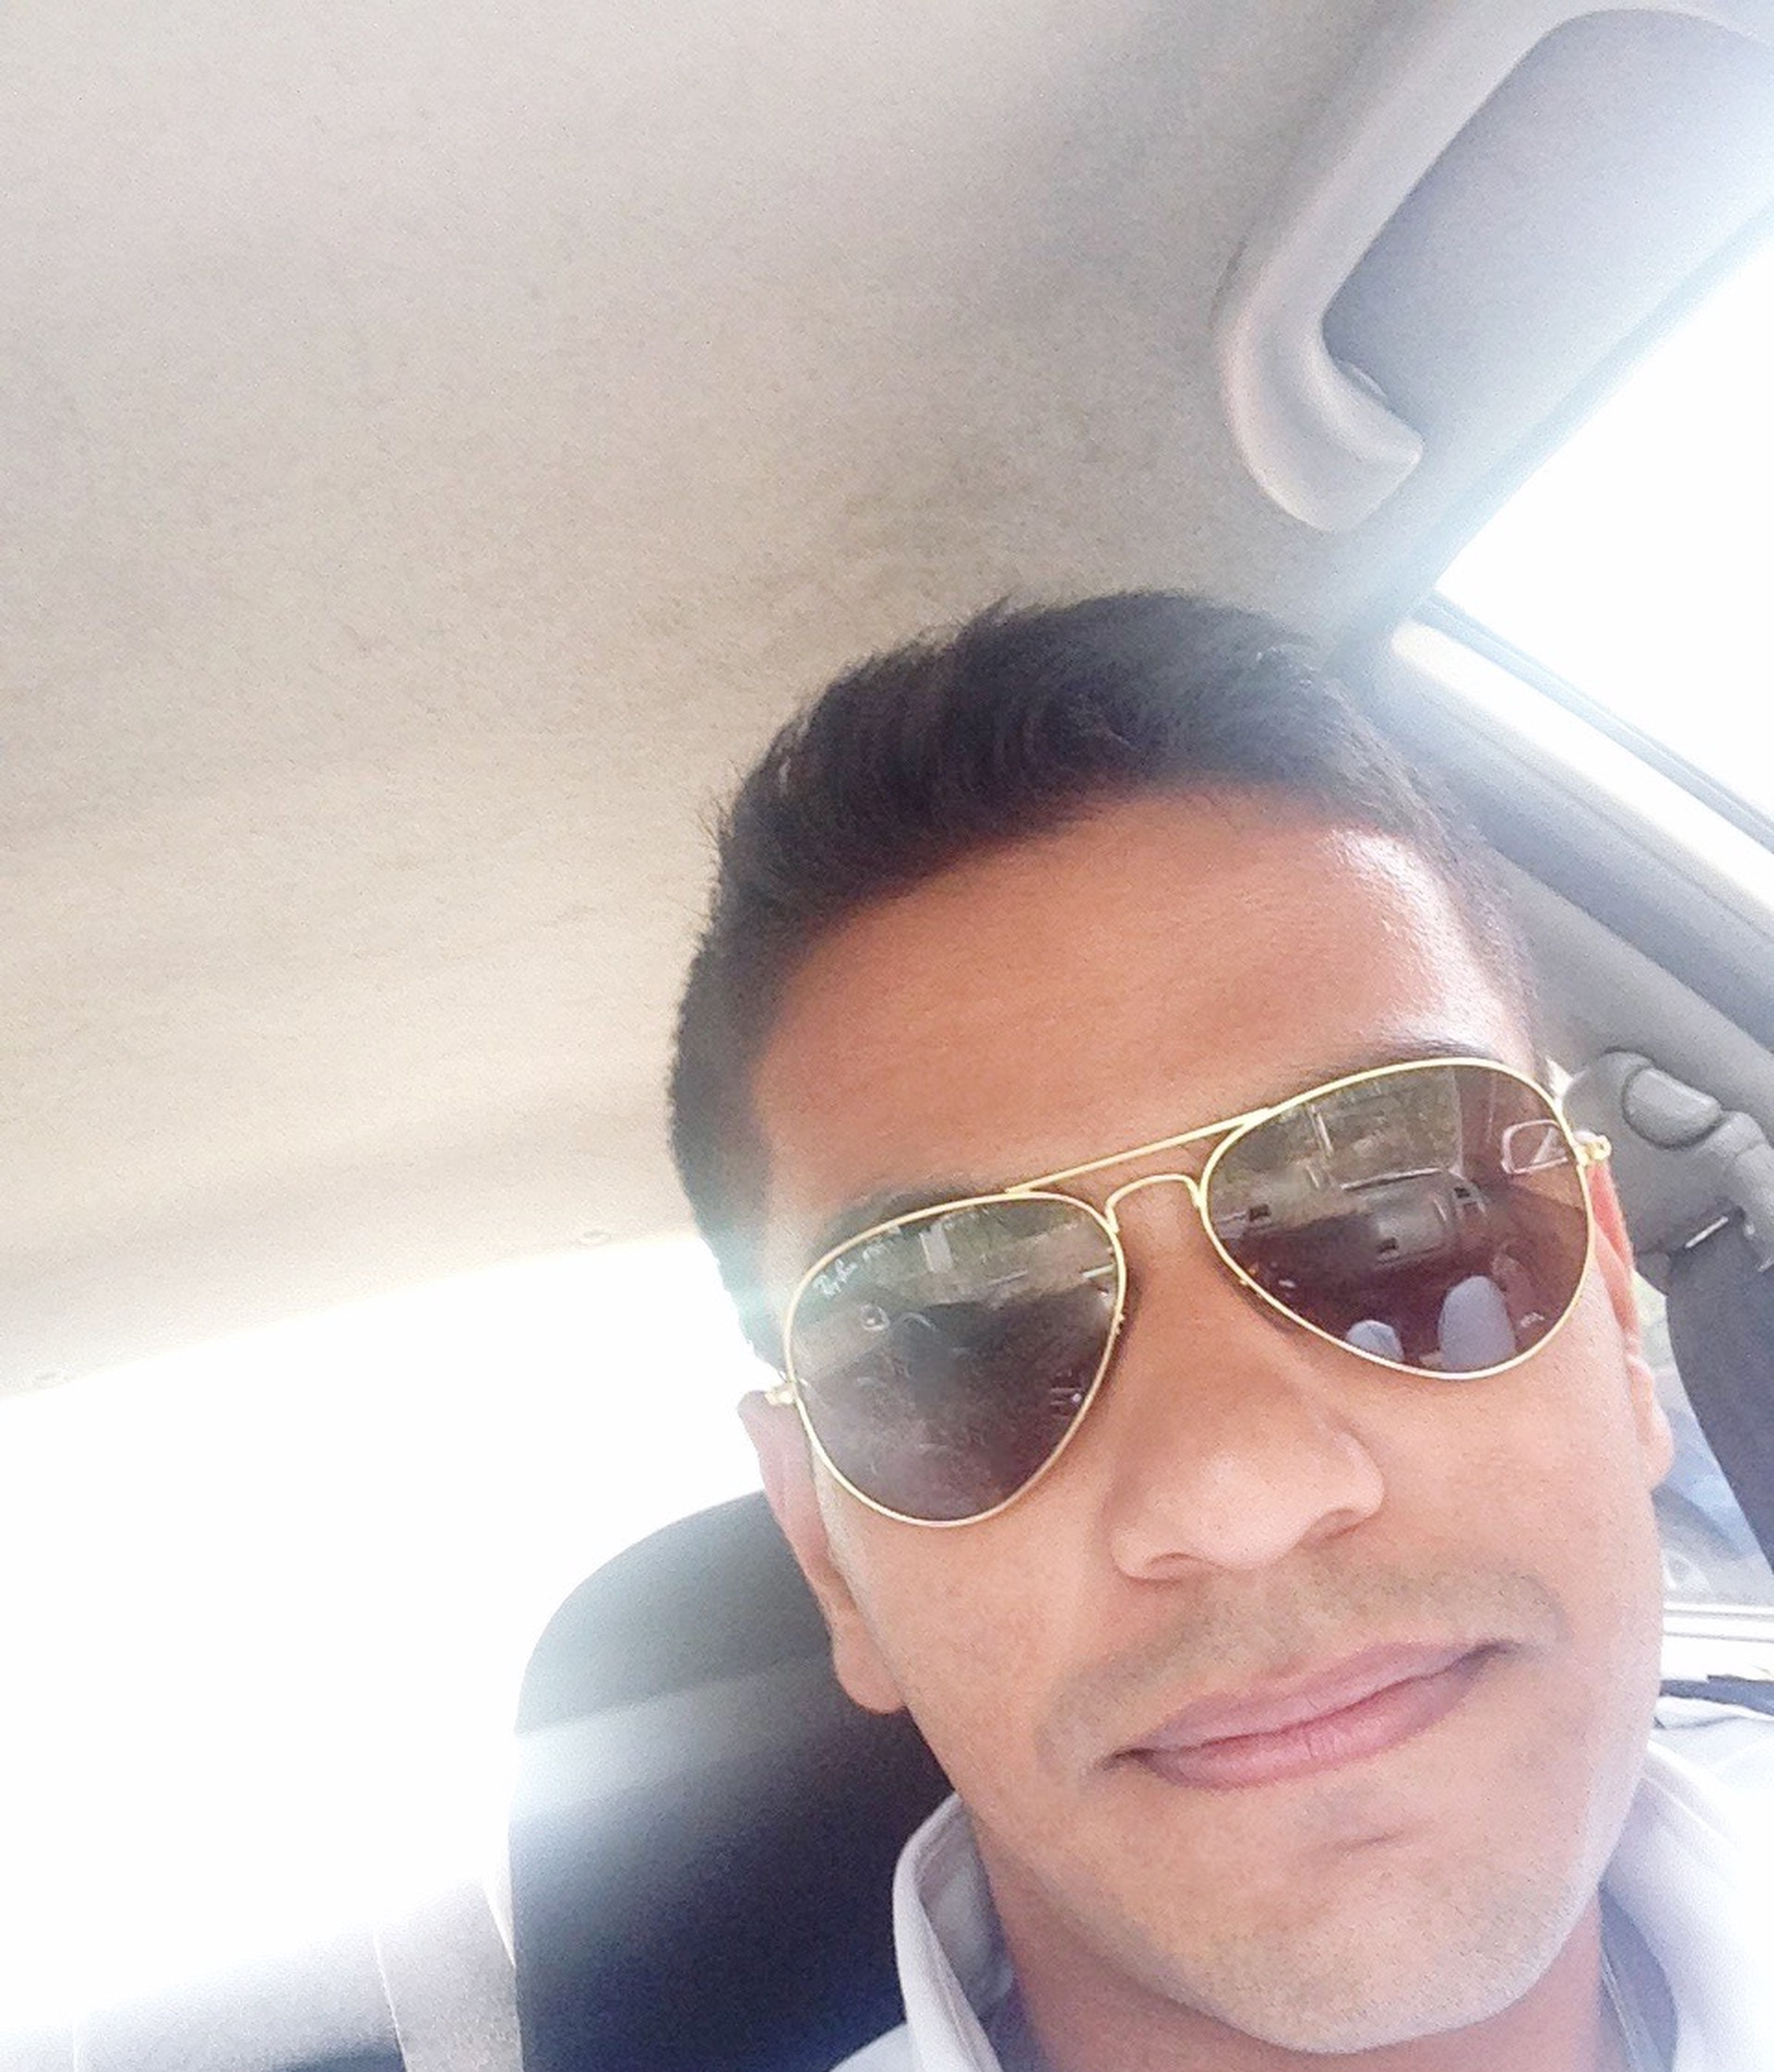 sunglasses, young adult, headshot, person, lifestyles, looking at camera, leisure activity, portrait, young men, front view, head and shoulders, transportation, close-up, mid adult, mode of transport, smiling, reflection